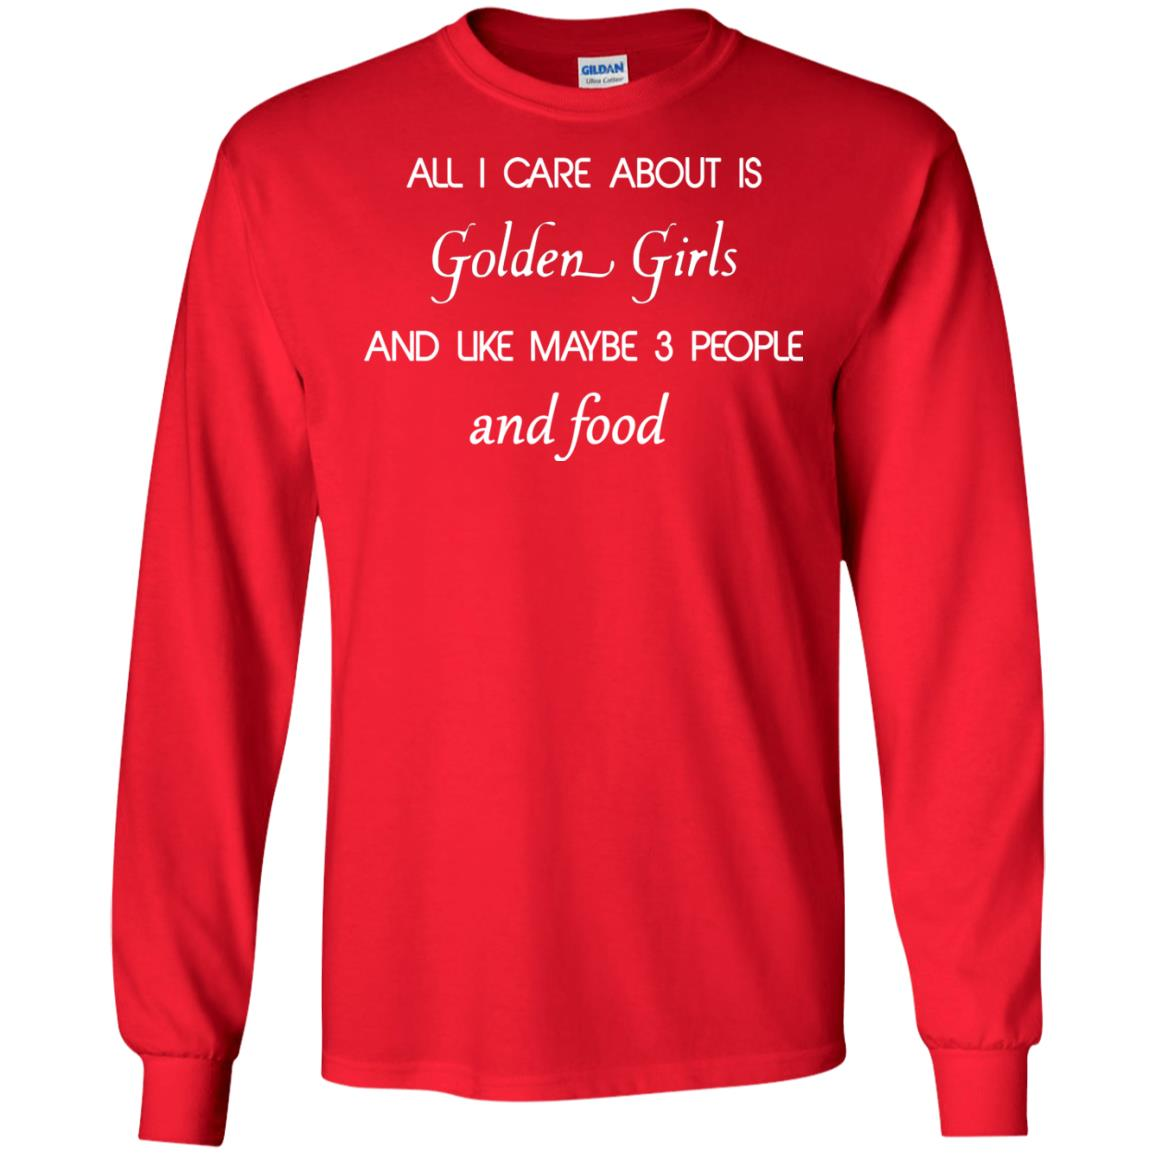 image 2688 - All I Care About Is Golden Girls Shirt, Hoodie